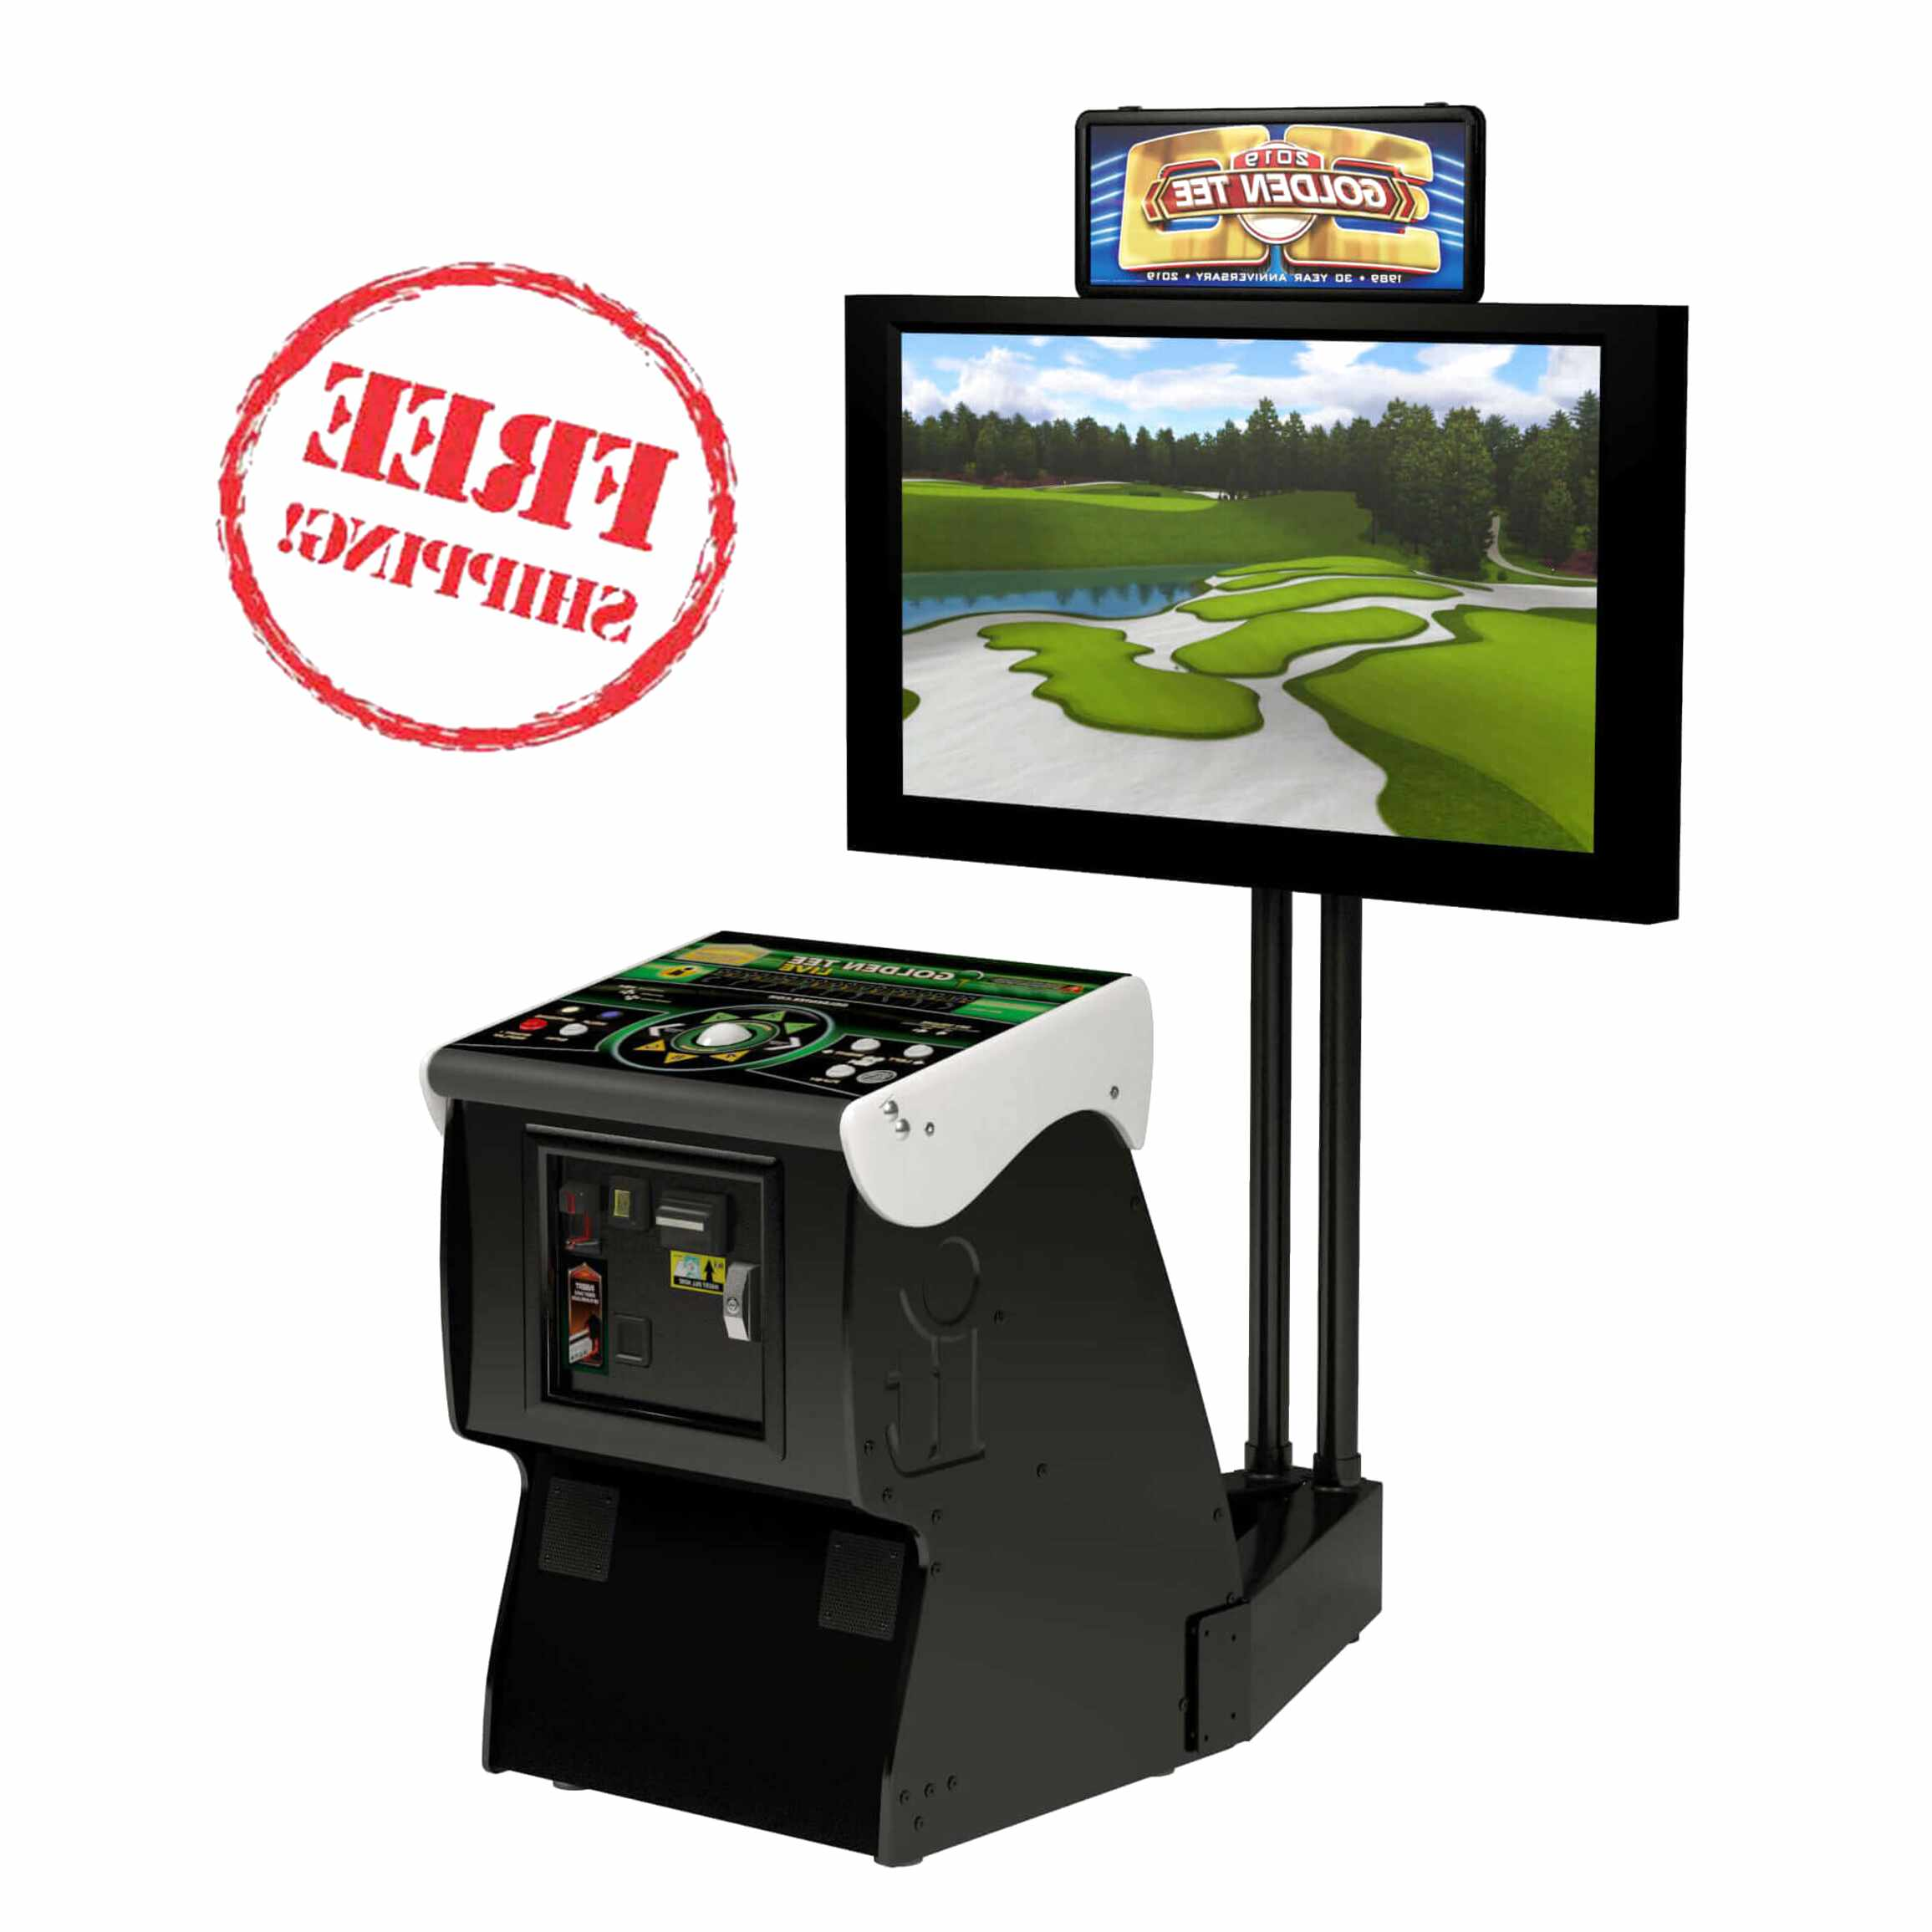 golden tee machine for sale